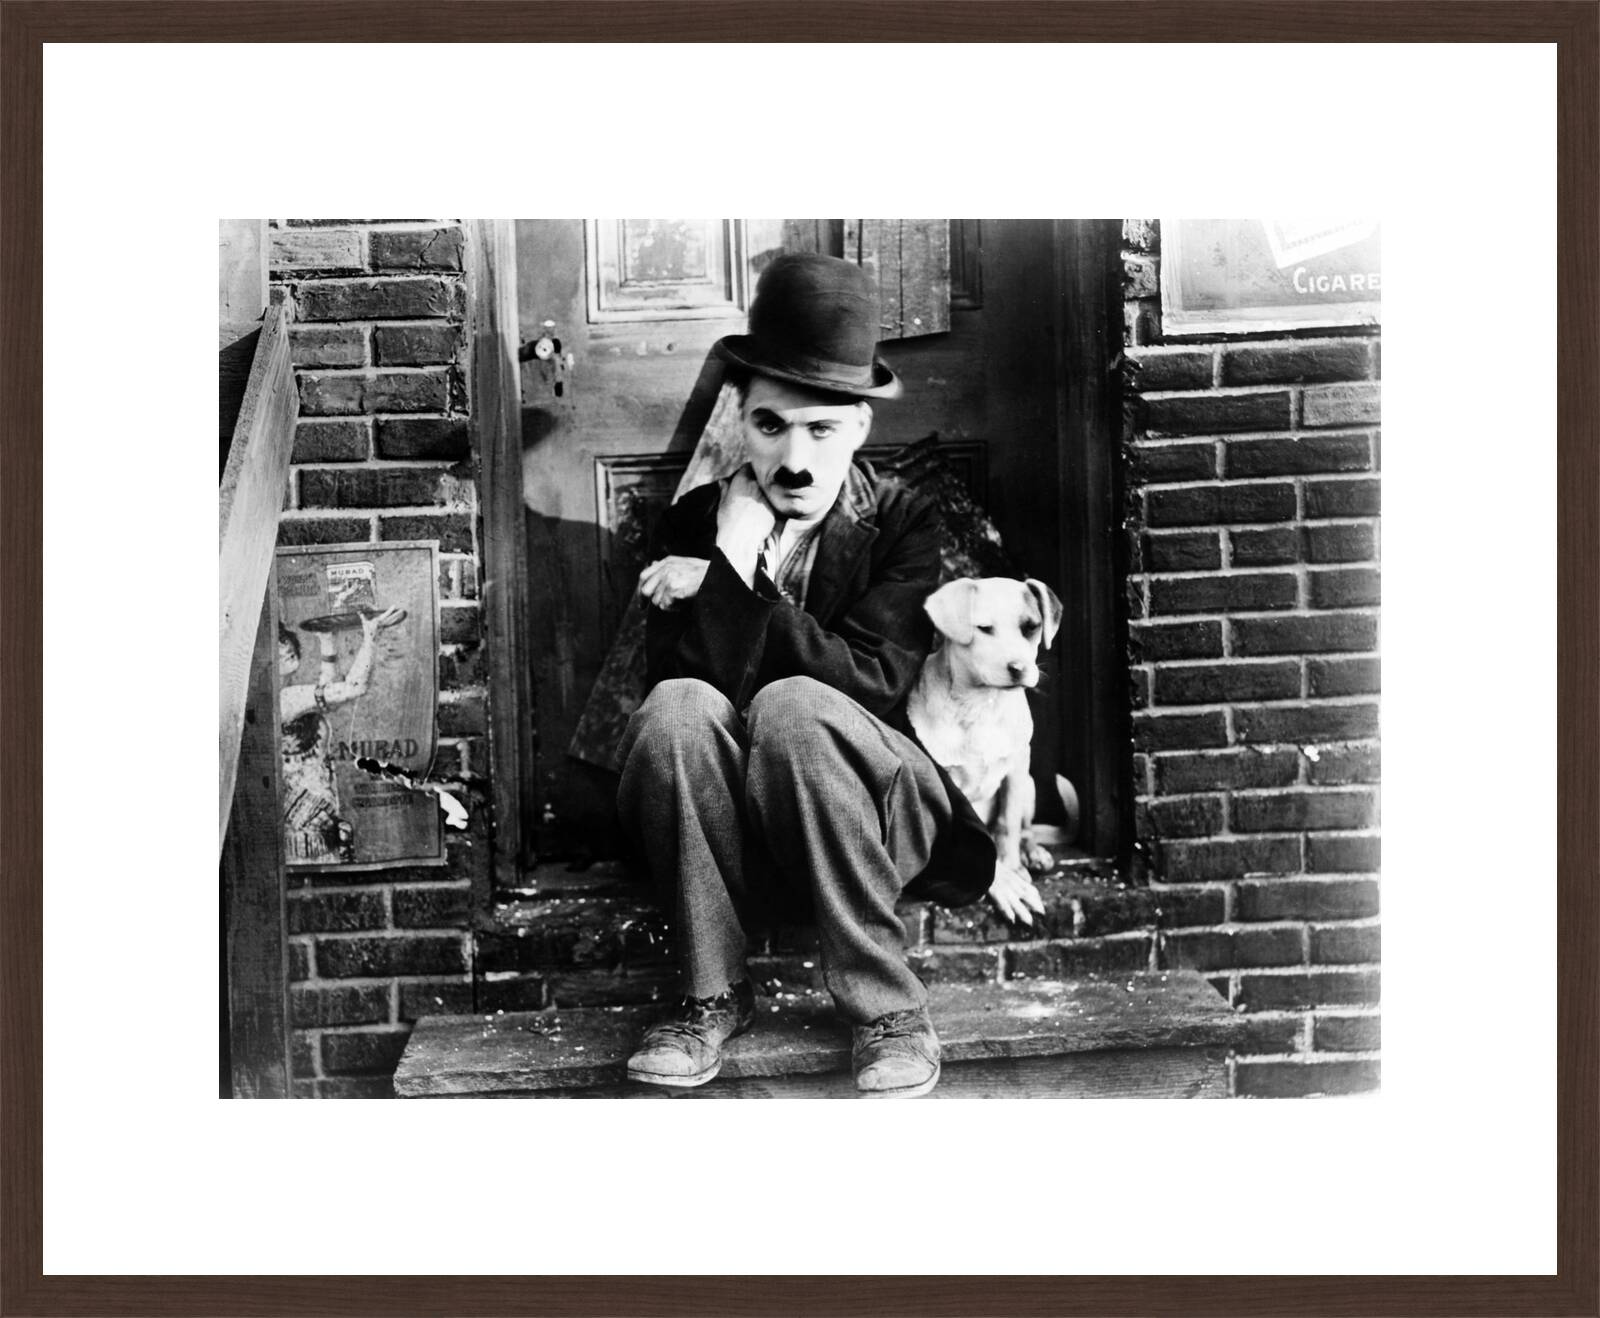 71cbf66a69247 Tramp (Charlie Chaplin) by Charles Chaplin. Buy pictures  amp  photo ...